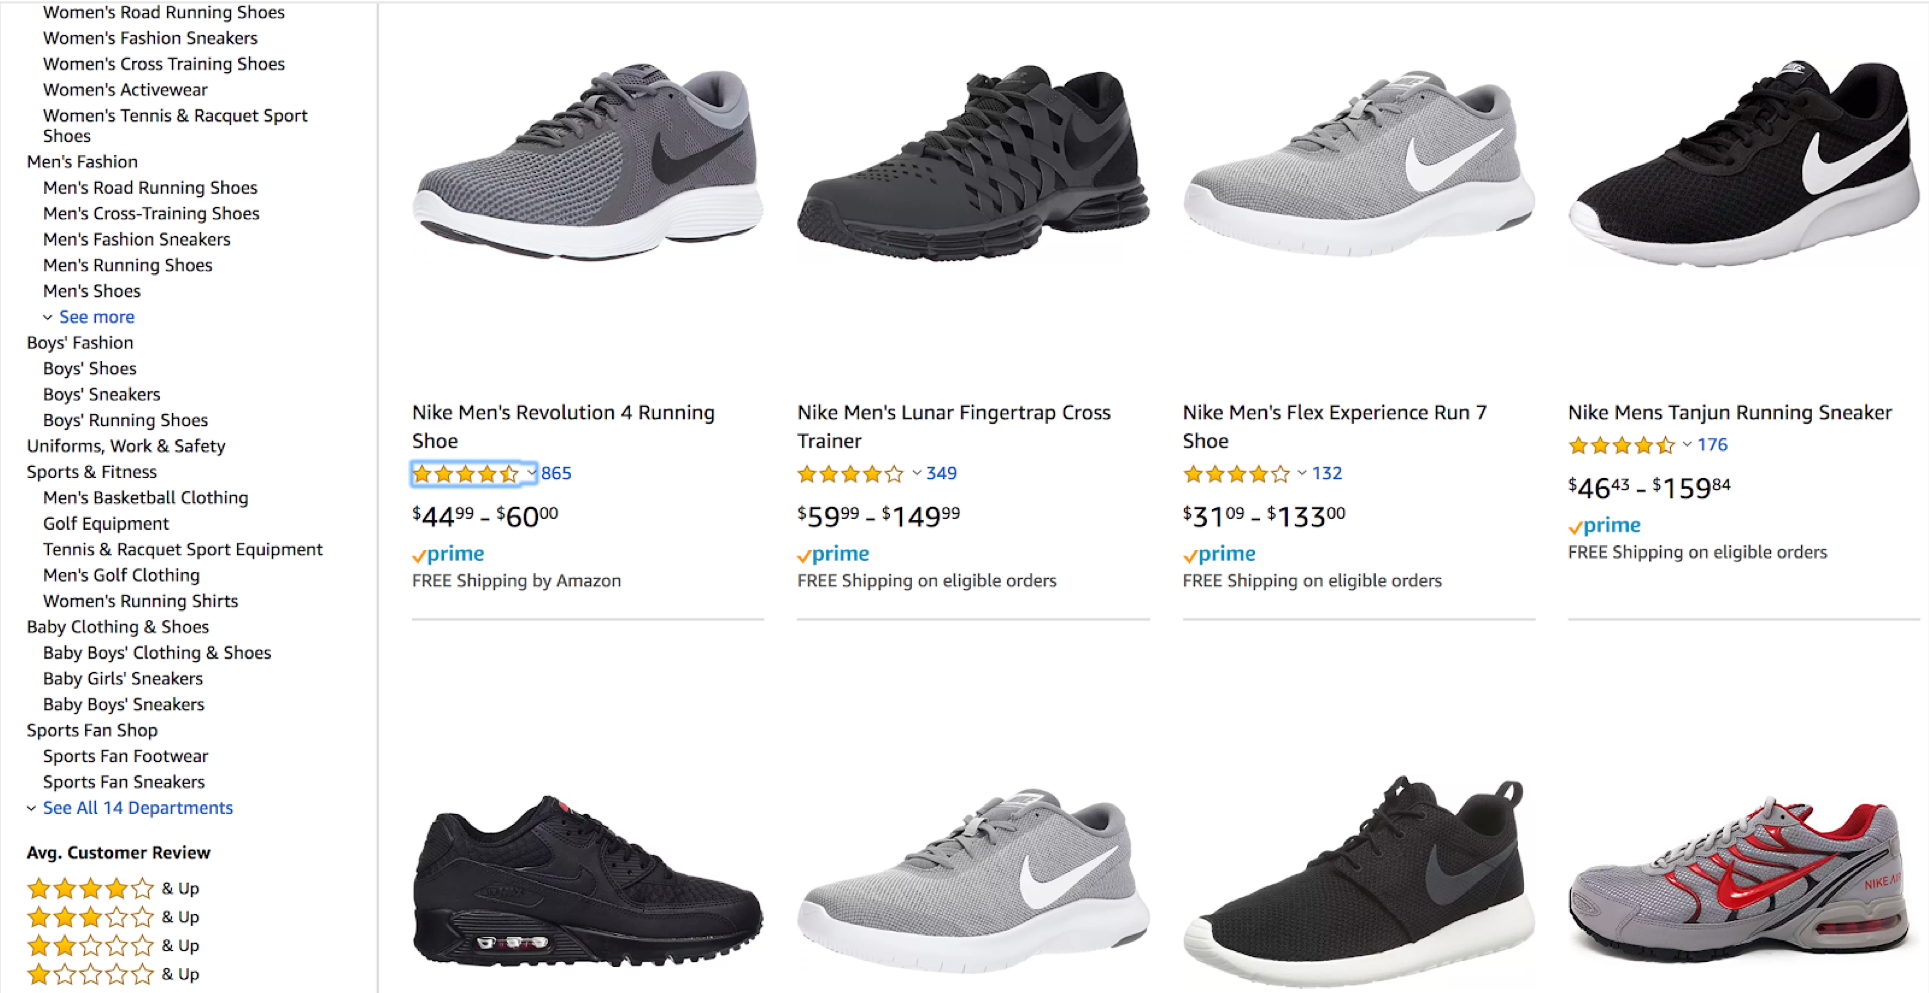 nike selling direct to consumers on amazon